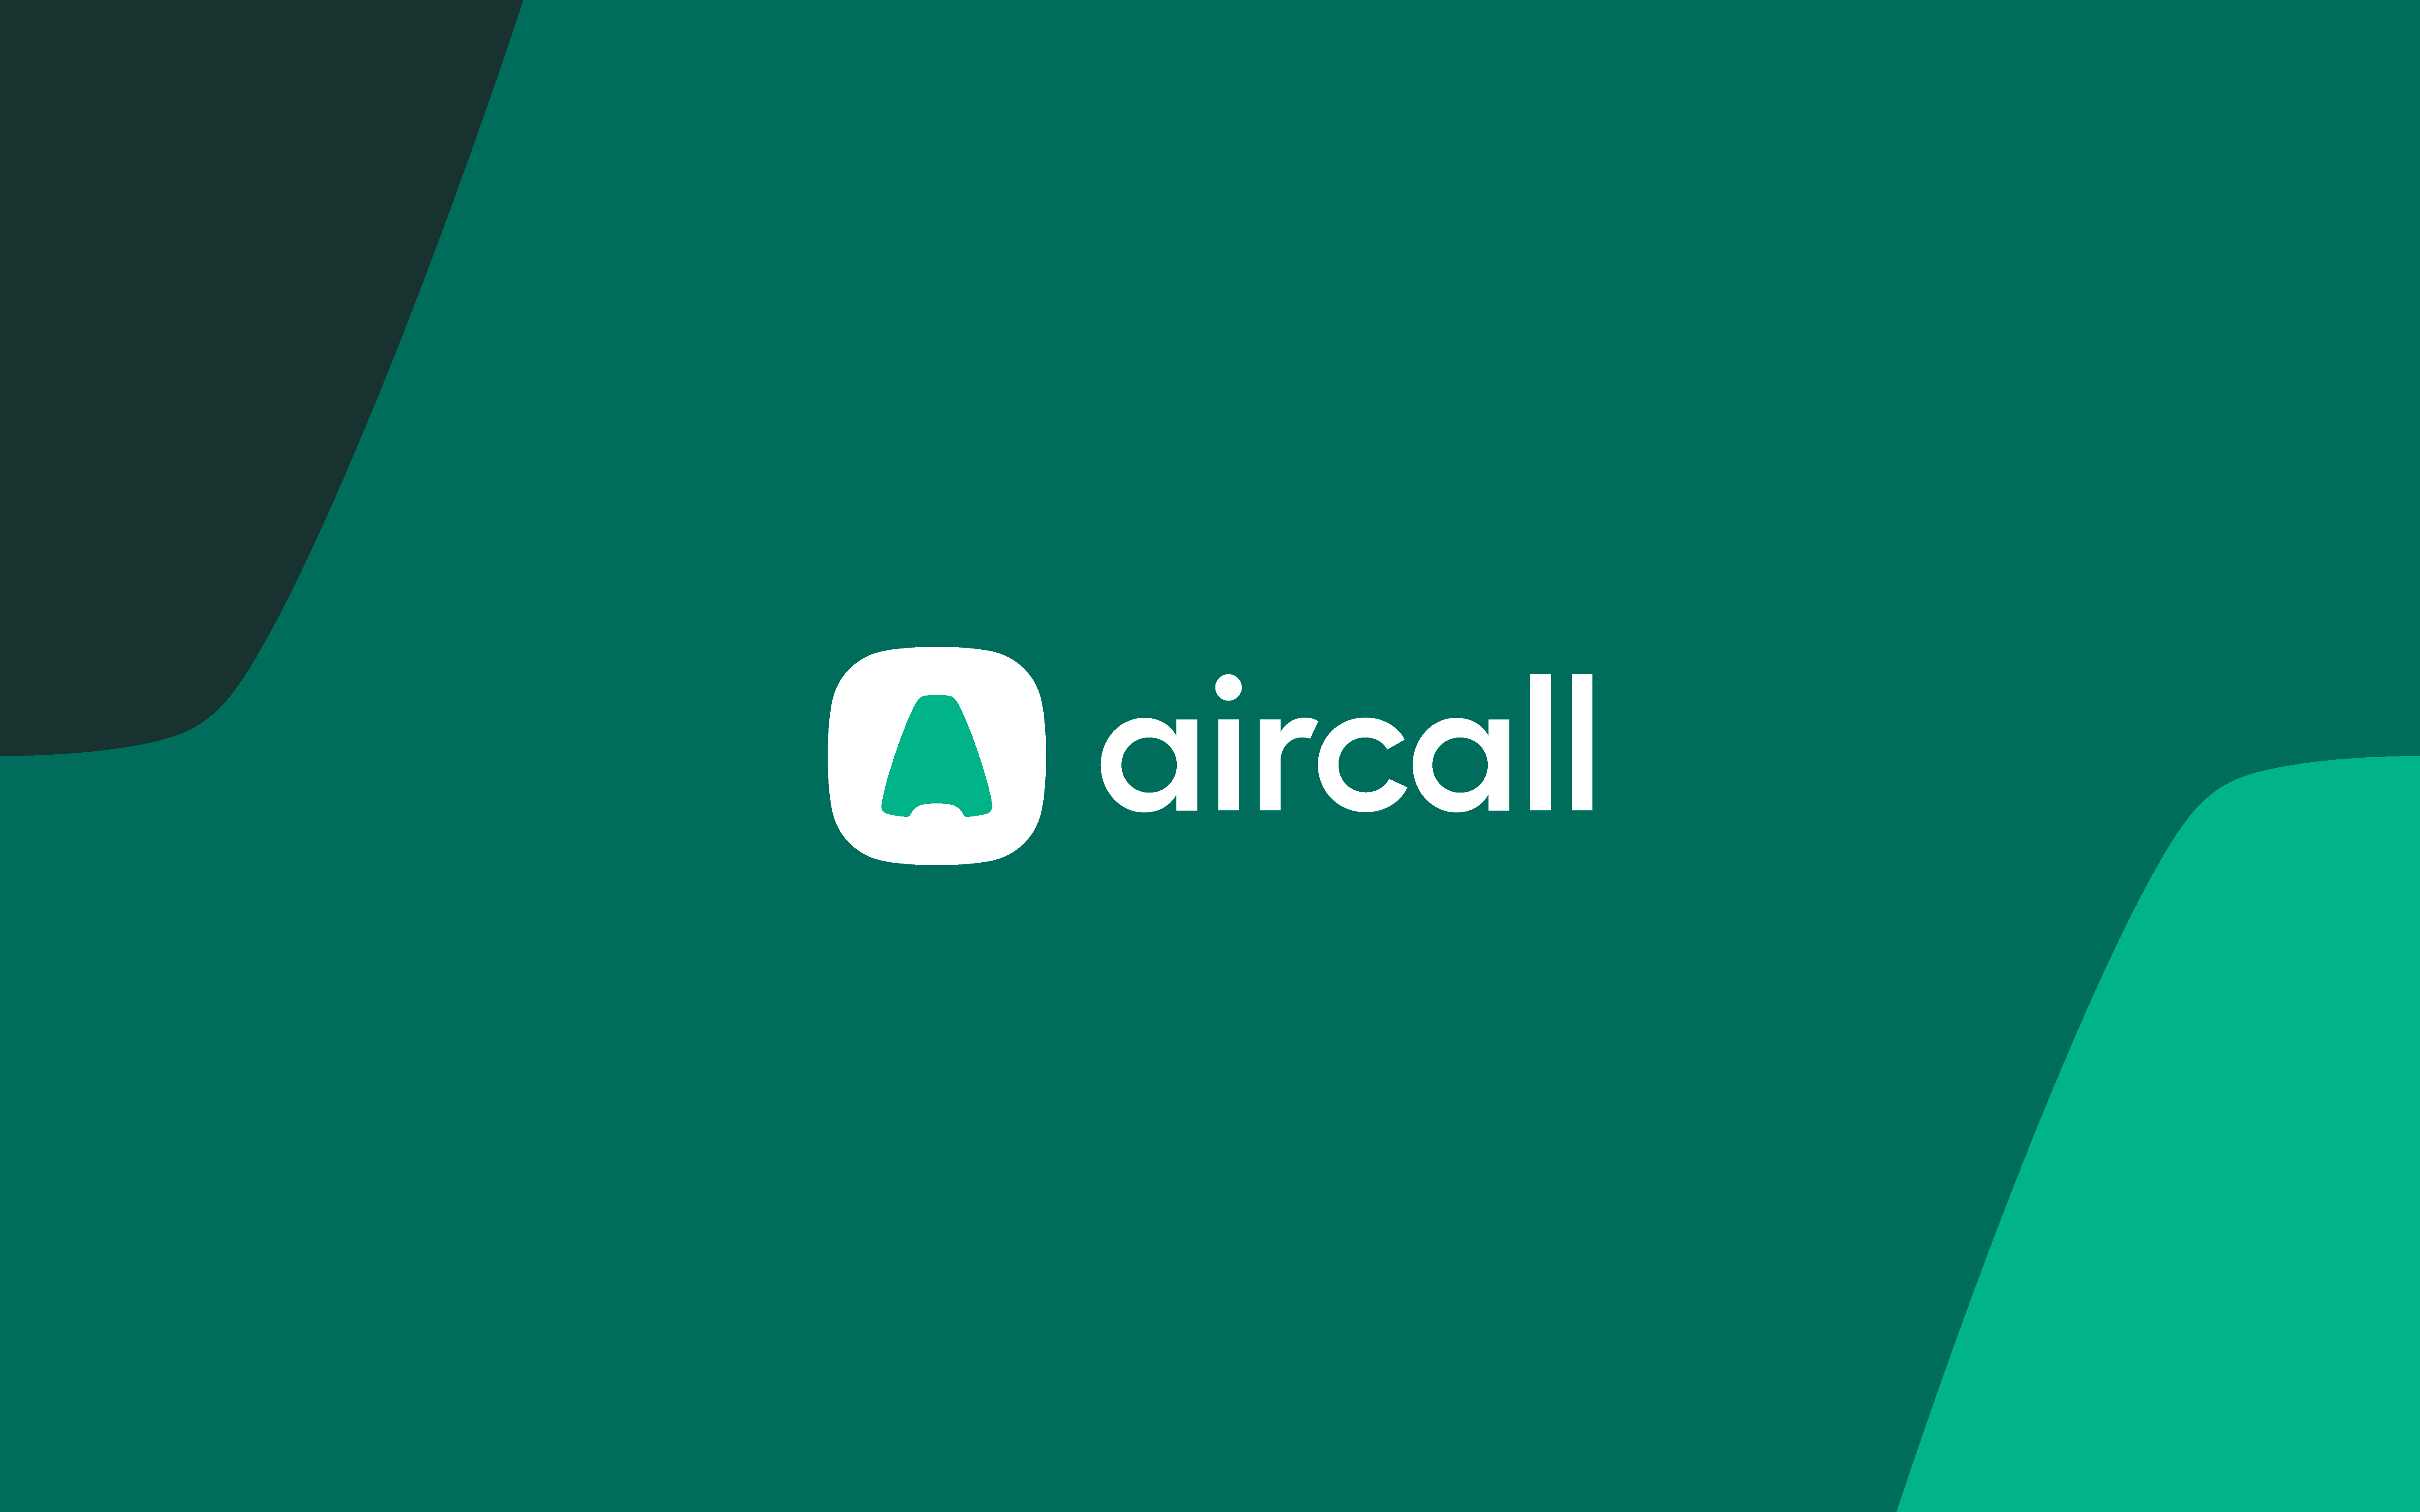 Aircall aircall brand update: why it's the right time to change